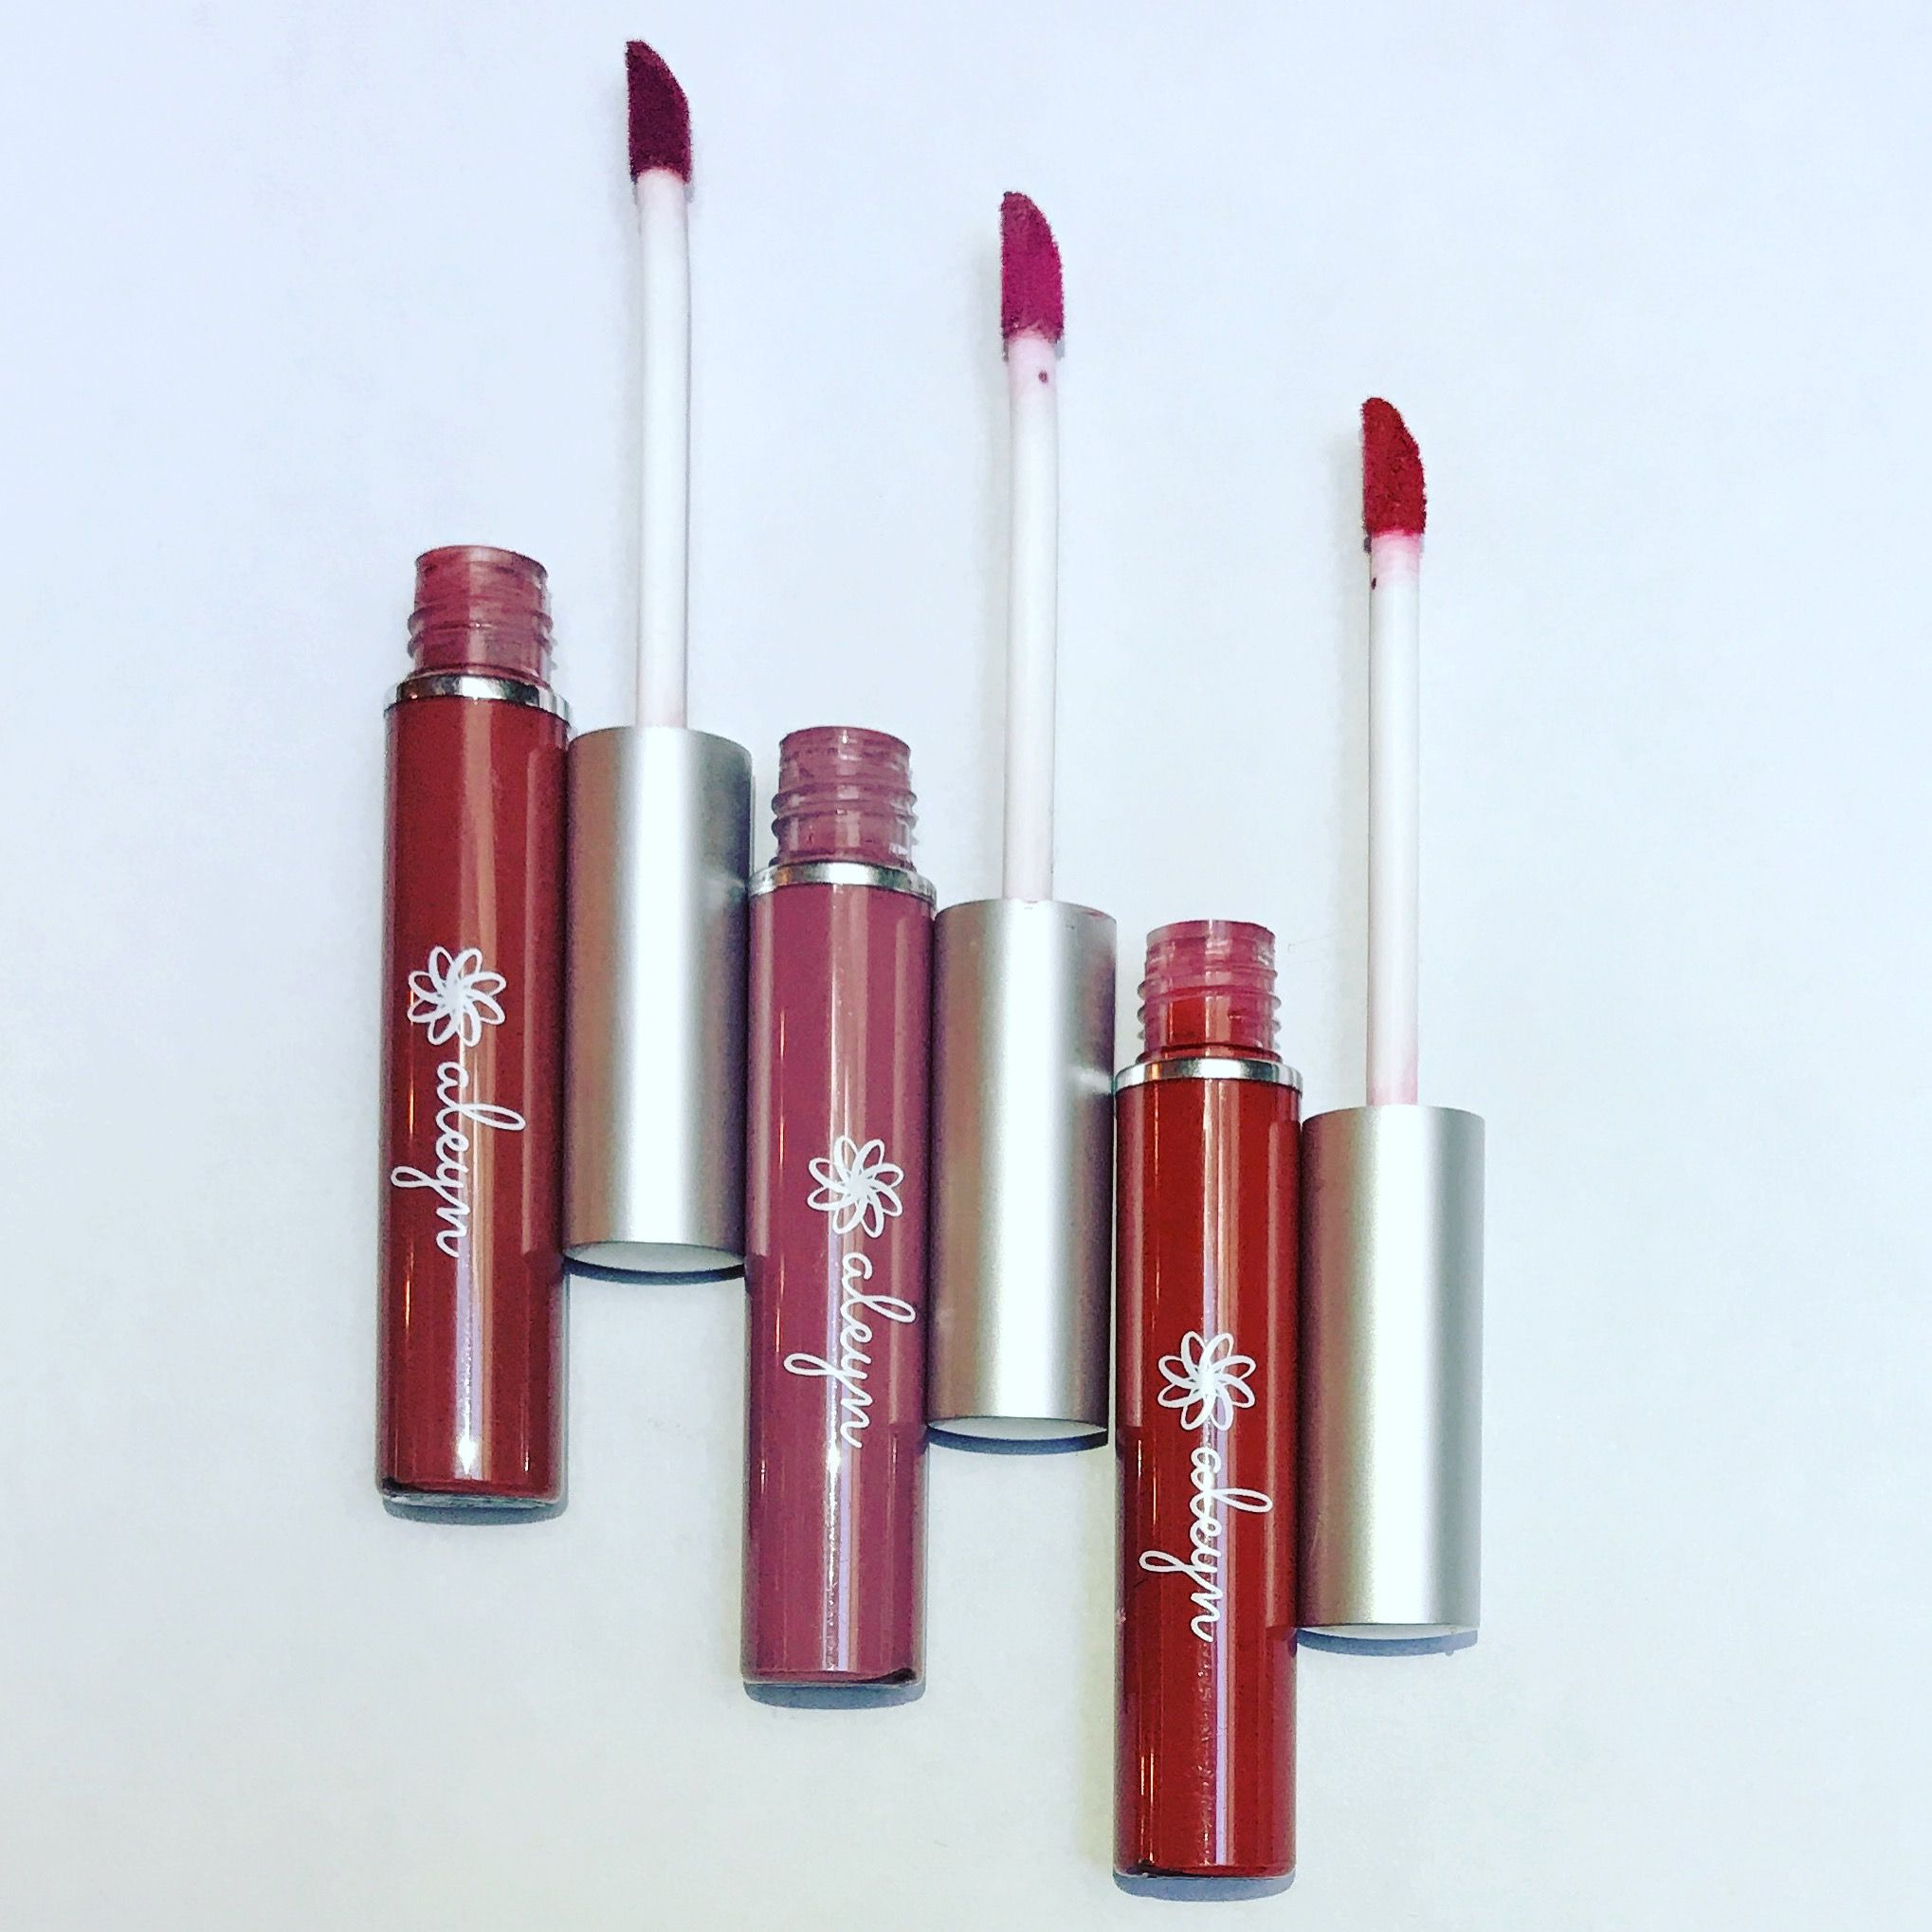 Aleyn Cosmetics Matte Liquid Lip Cosmetics, Healthy